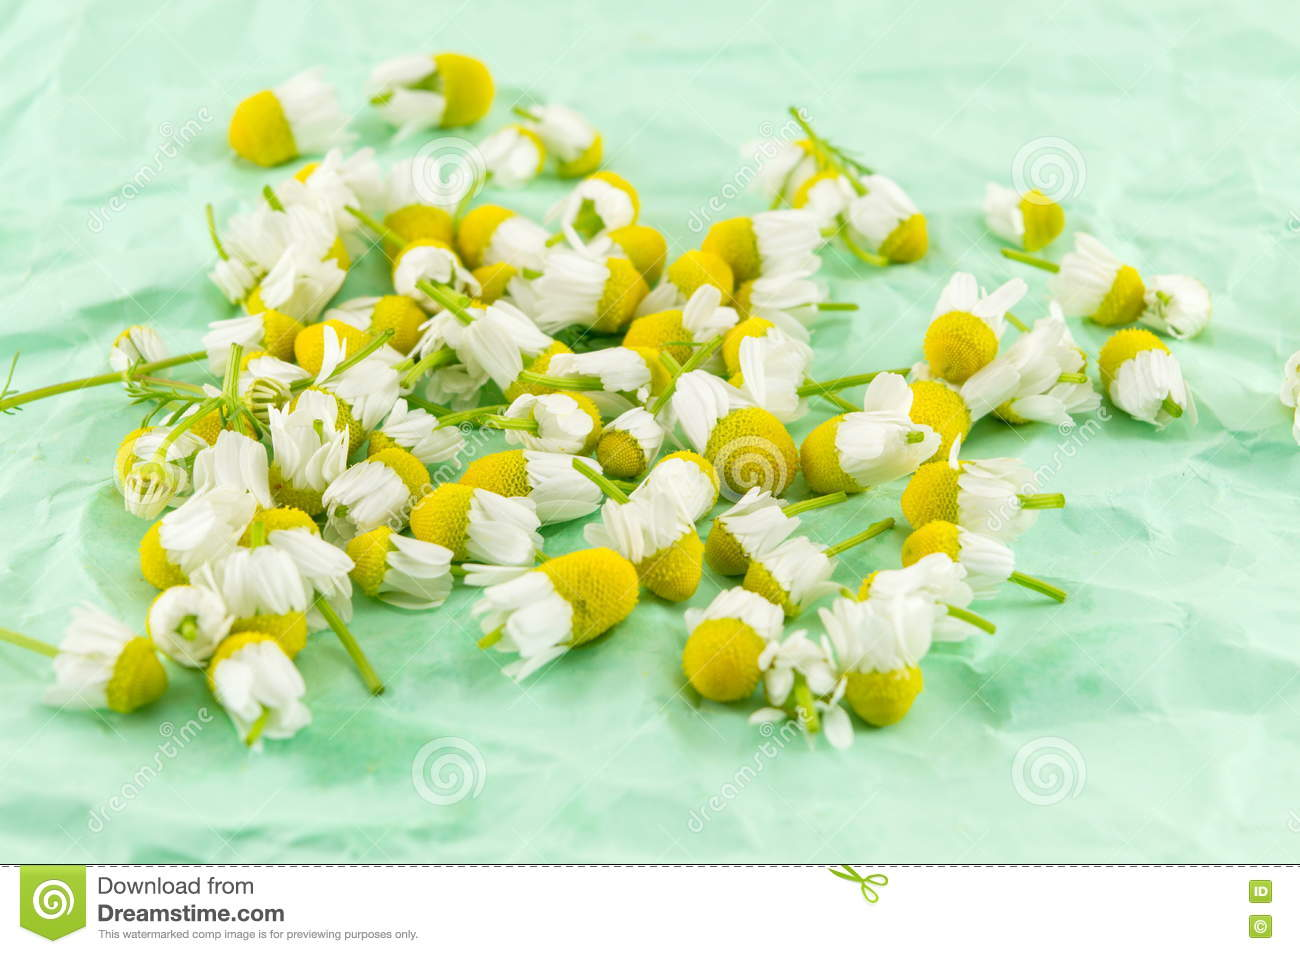 Dried chamomile flowers for making healthy tea stock photo image chamomile dried flowers healthy tea dhlflorist Gallery